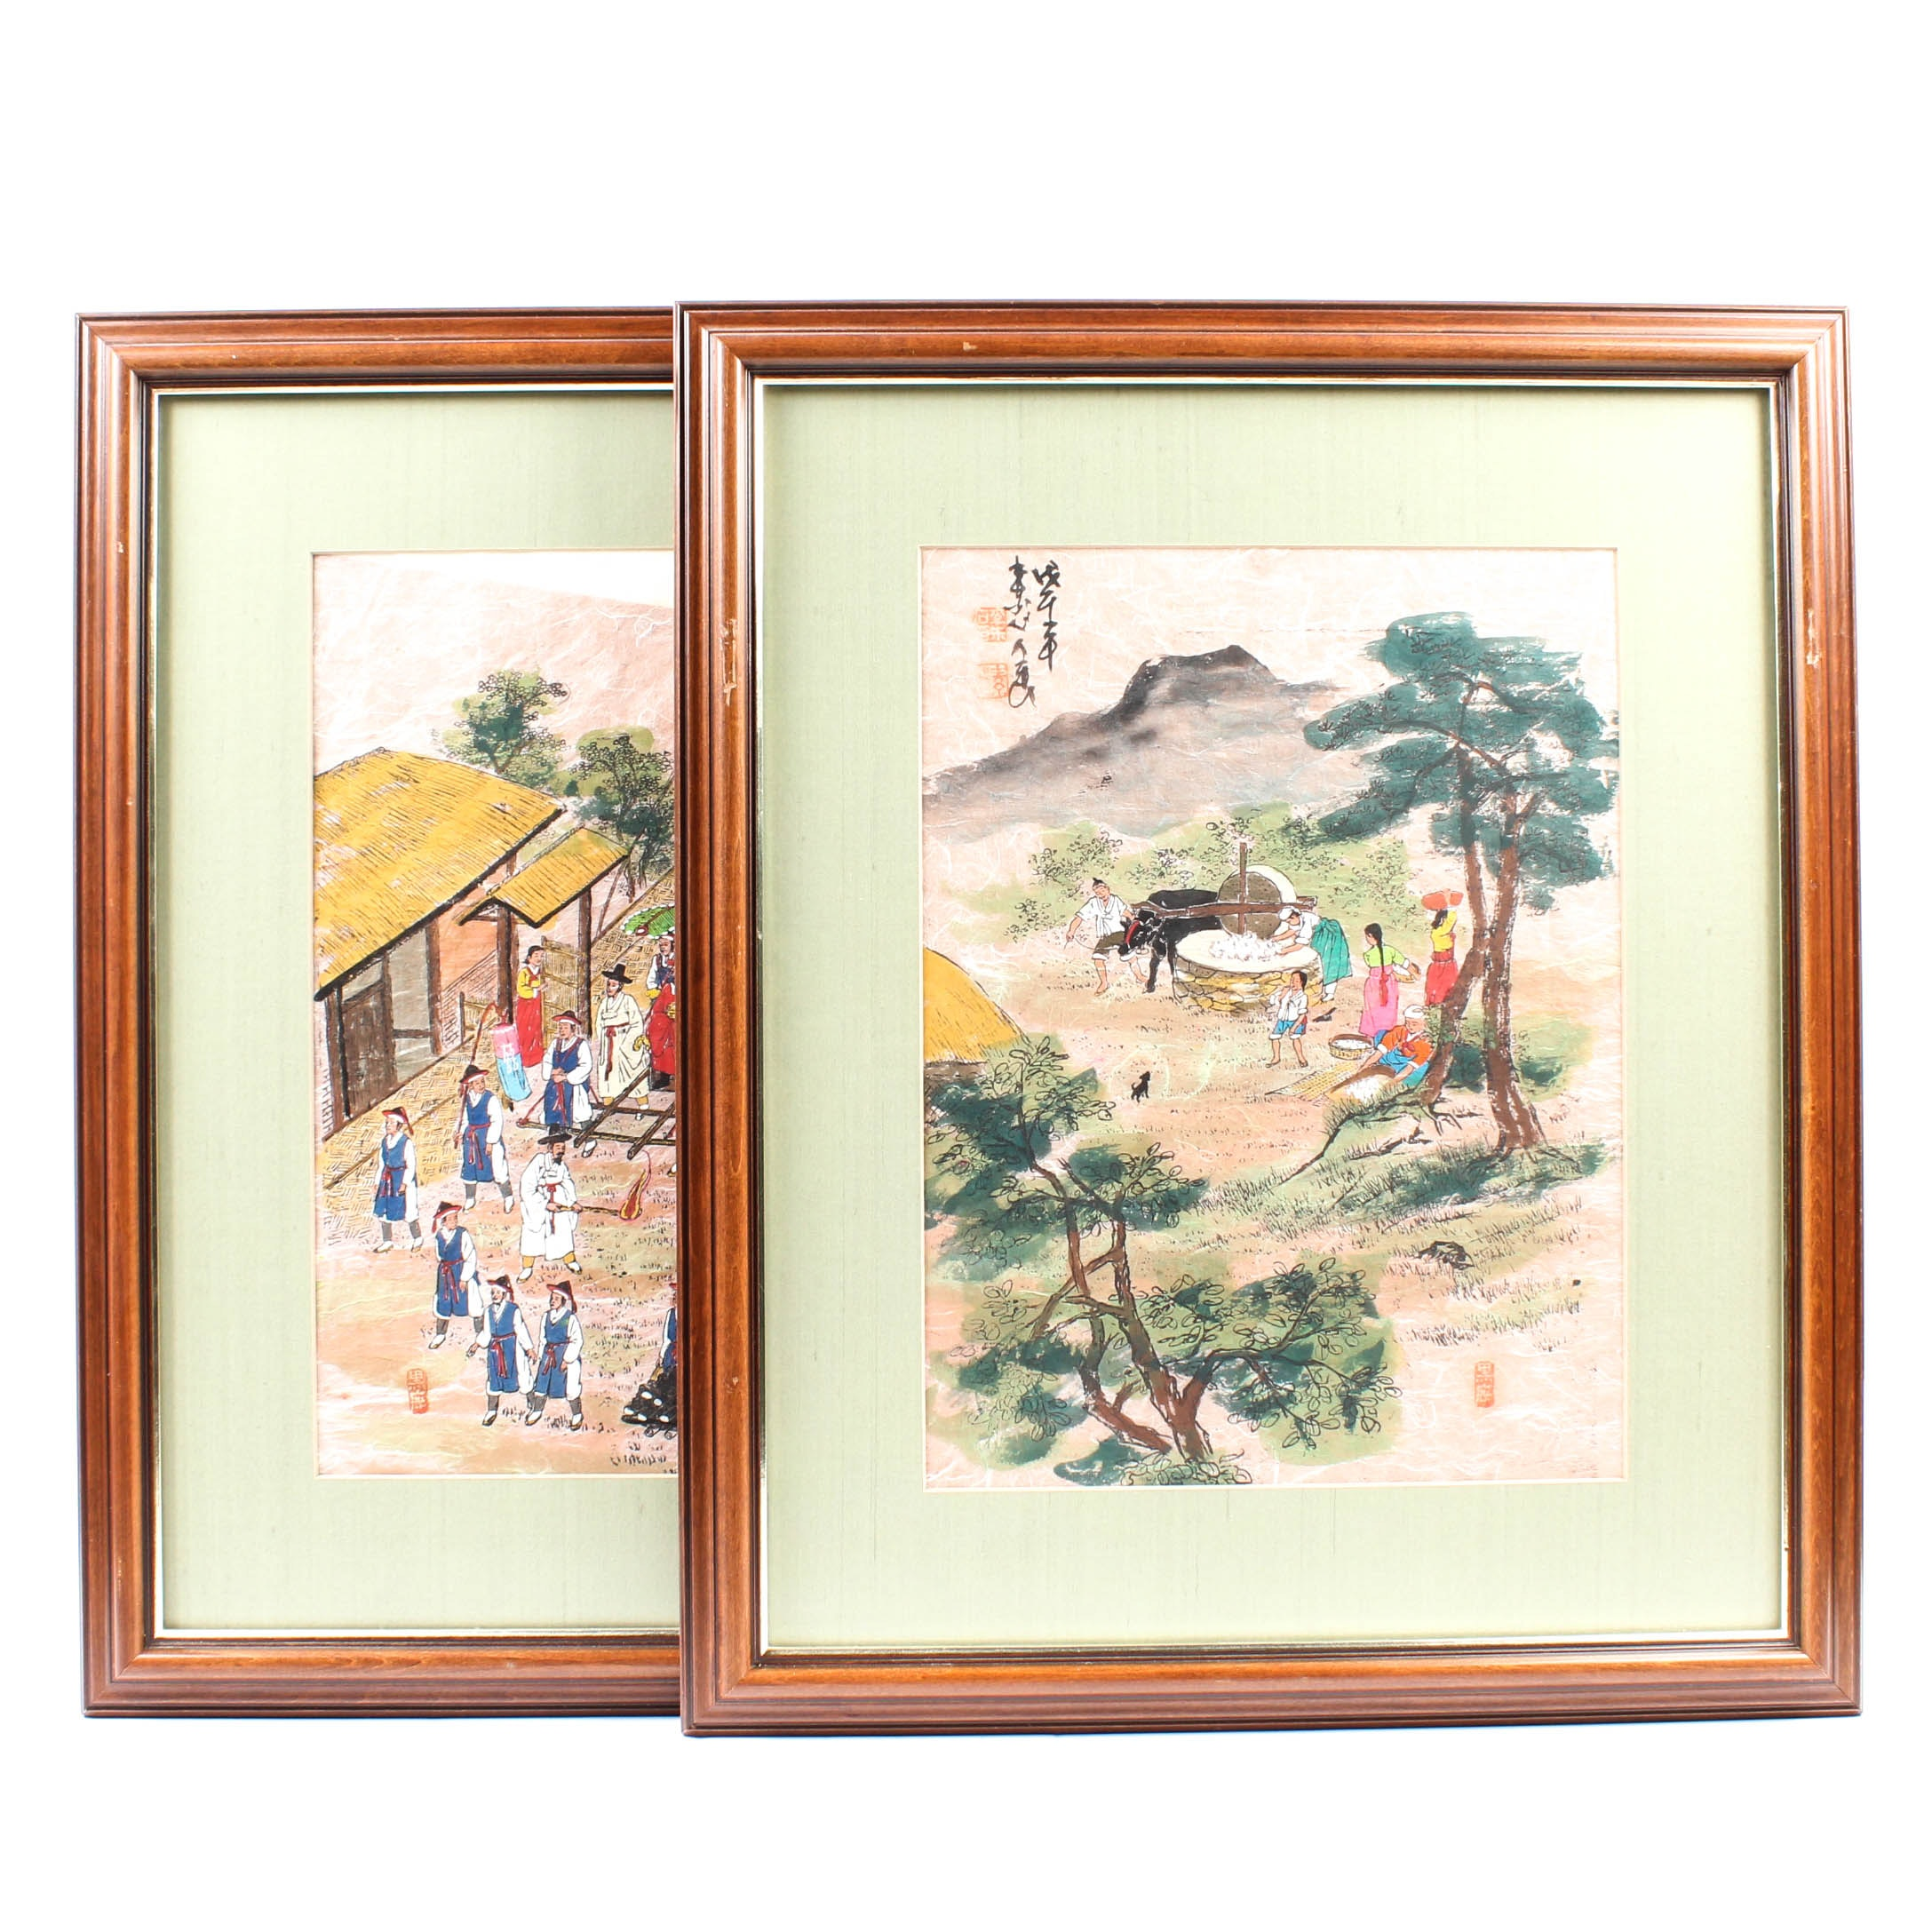 1970s Chinese Gouache Paintings on Hand-Made Rice Paper